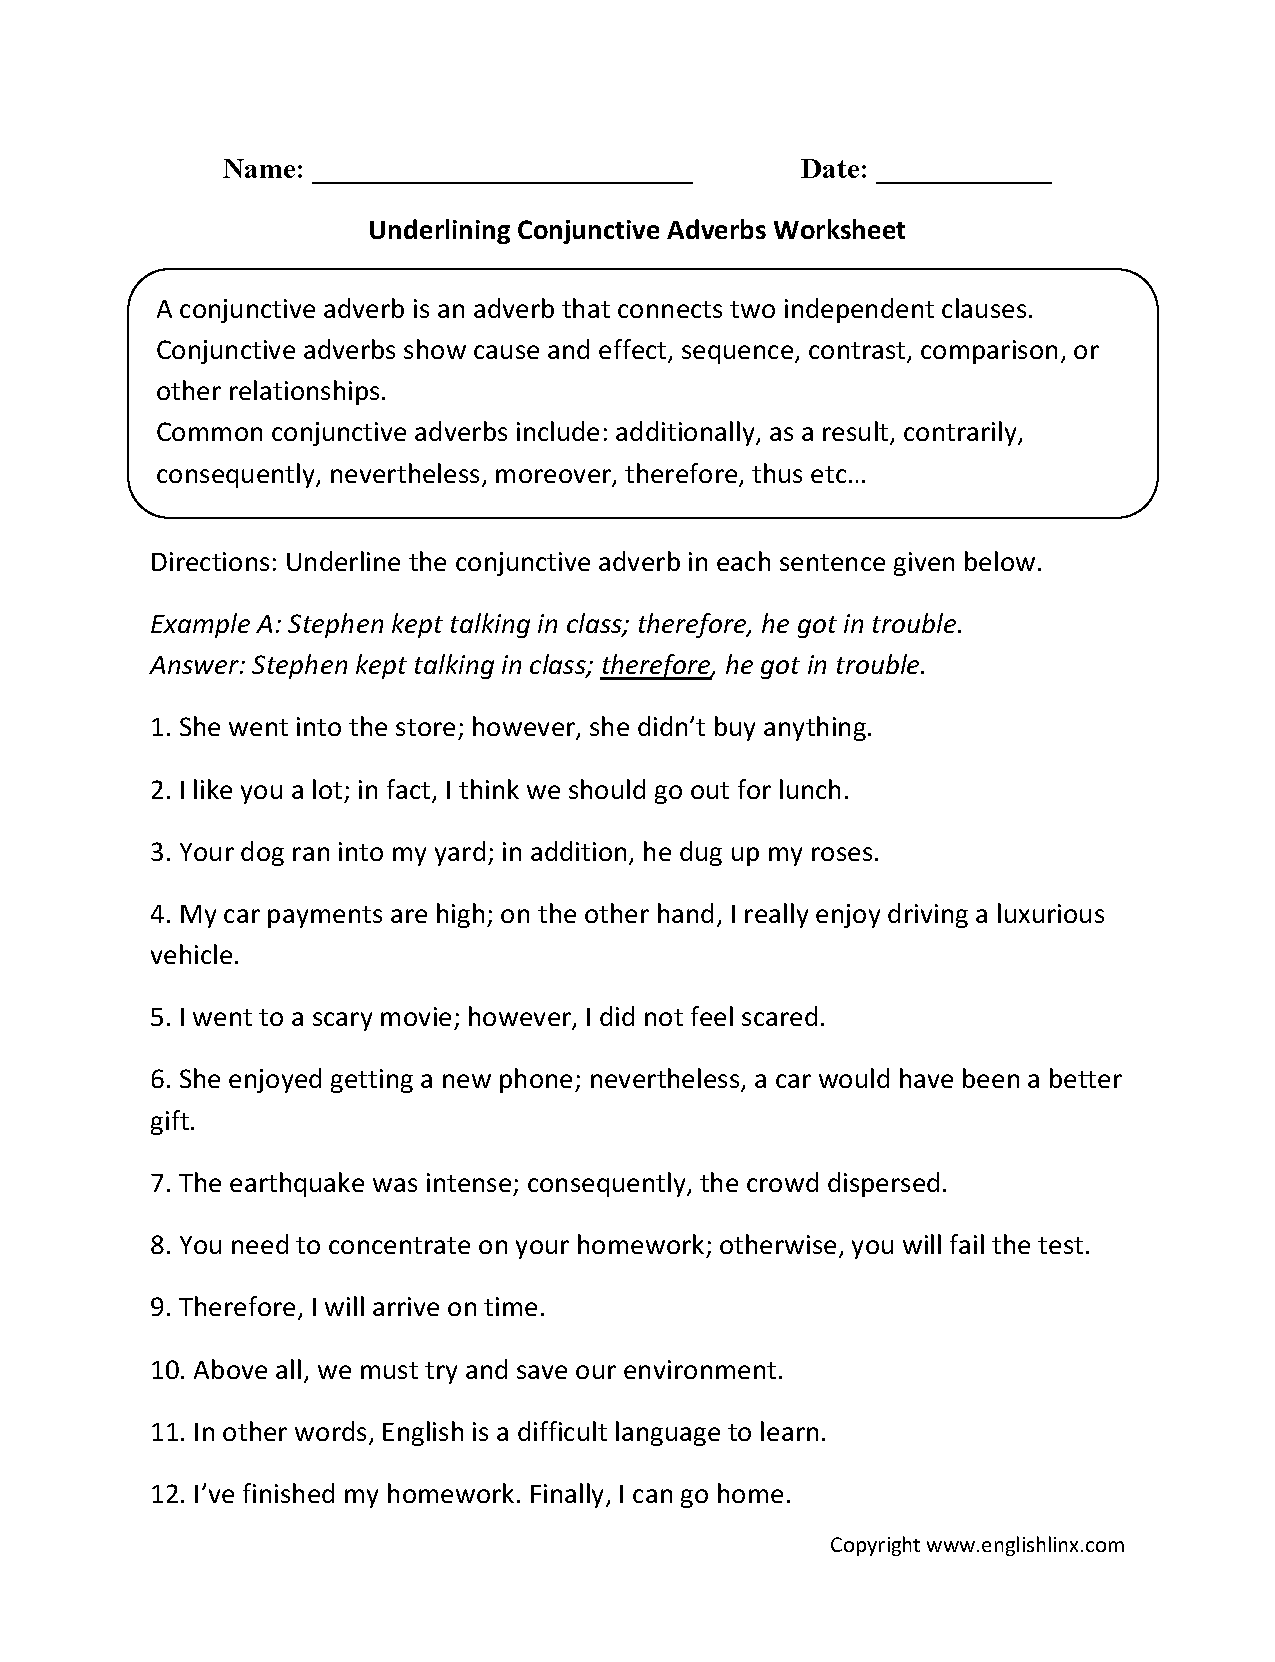 Aldiablosus  Inspiring Englishlinxcom  Conjunctions Worksheets With Engaging Worksheet With Adorable Green Cross Code Worksheets Also Alphabet Handwriting Worksheets Printable In Addition Measuring Liquid Volume Worksheets And Hazards In The Home Worksheets As Well As Keywords In Math Word Problems Worksheet Additionally First Person Worksheets From Englishlinxcom With Aldiablosus  Engaging Englishlinxcom  Conjunctions Worksheets With Adorable Worksheet And Inspiring Green Cross Code Worksheets Also Alphabet Handwriting Worksheets Printable In Addition Measuring Liquid Volume Worksheets From Englishlinxcom